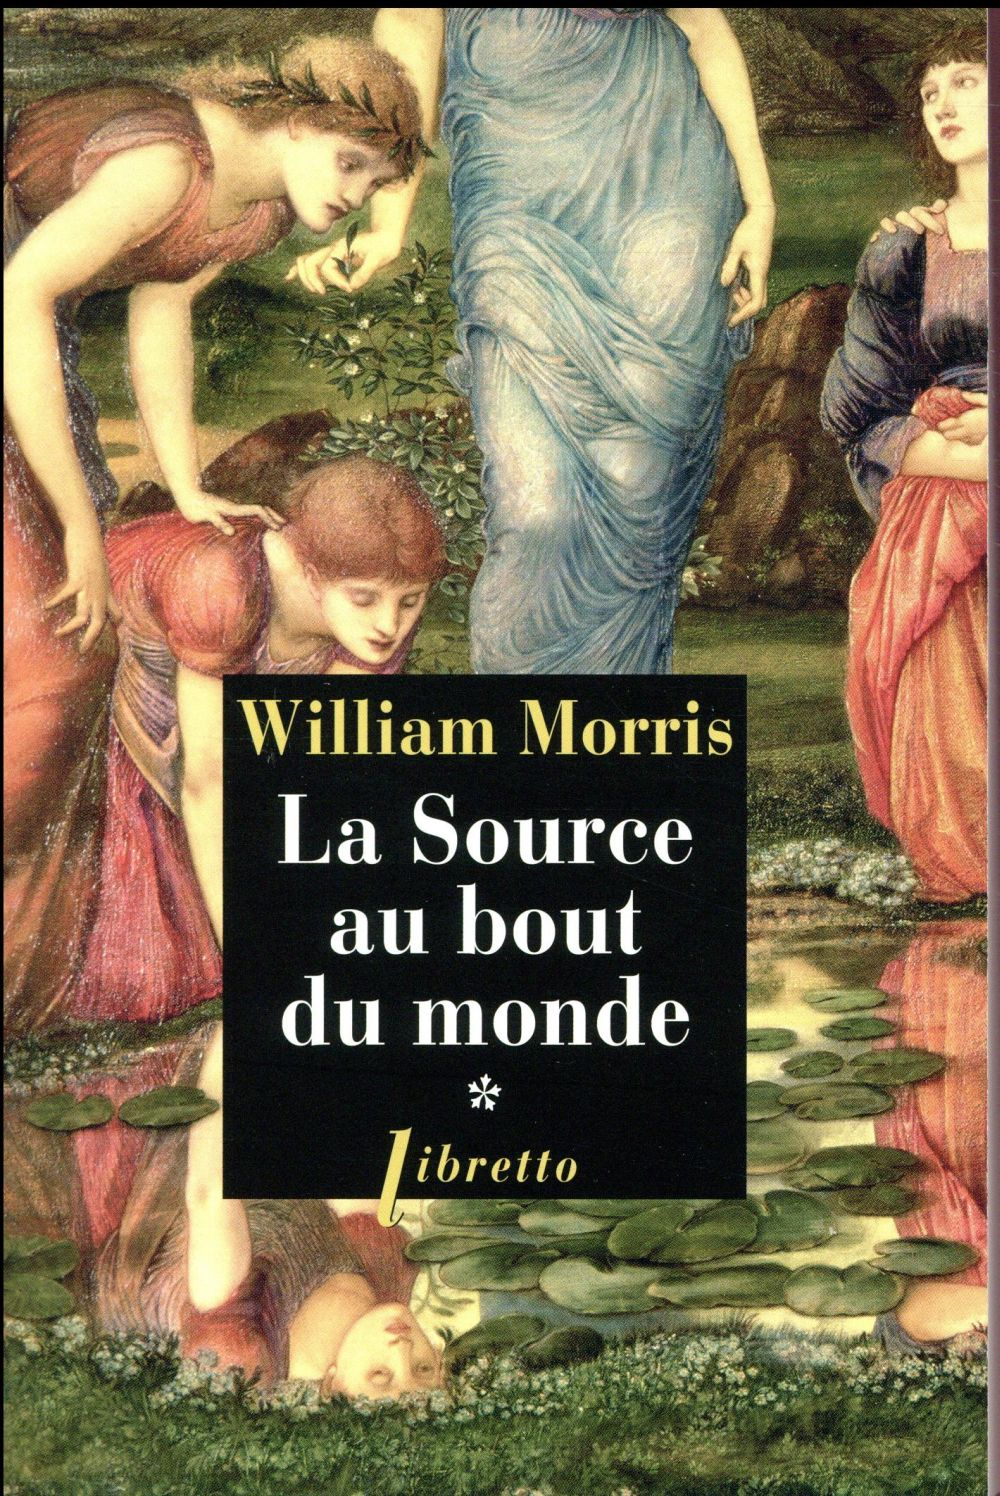 LA SOURCE AU BOUT DU MONDE T1 MORRIS WILLIAM LIBRETTO